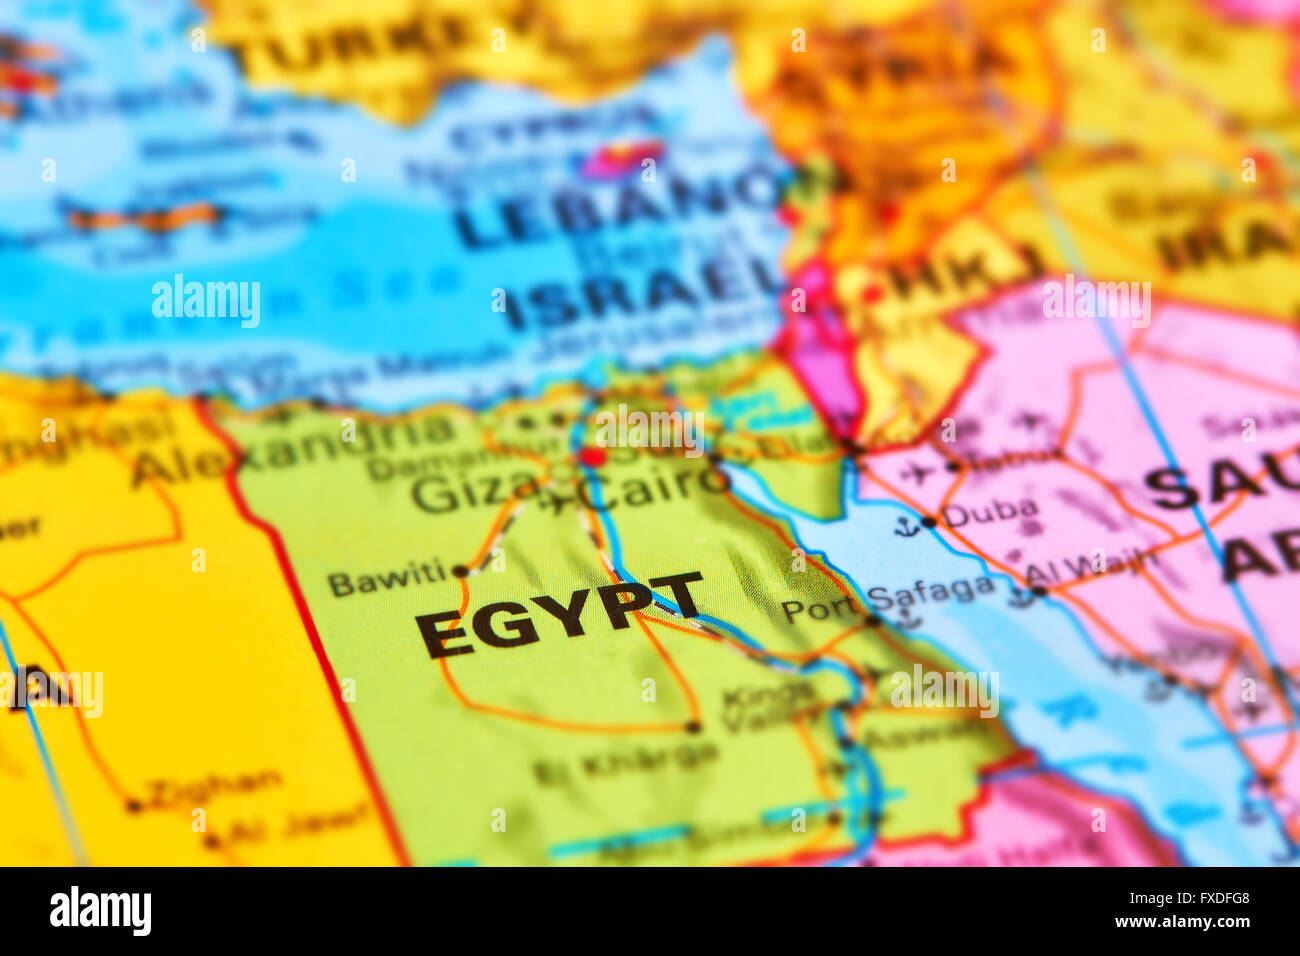 Egypt Country in Africa on the World Map Stock Photo ...